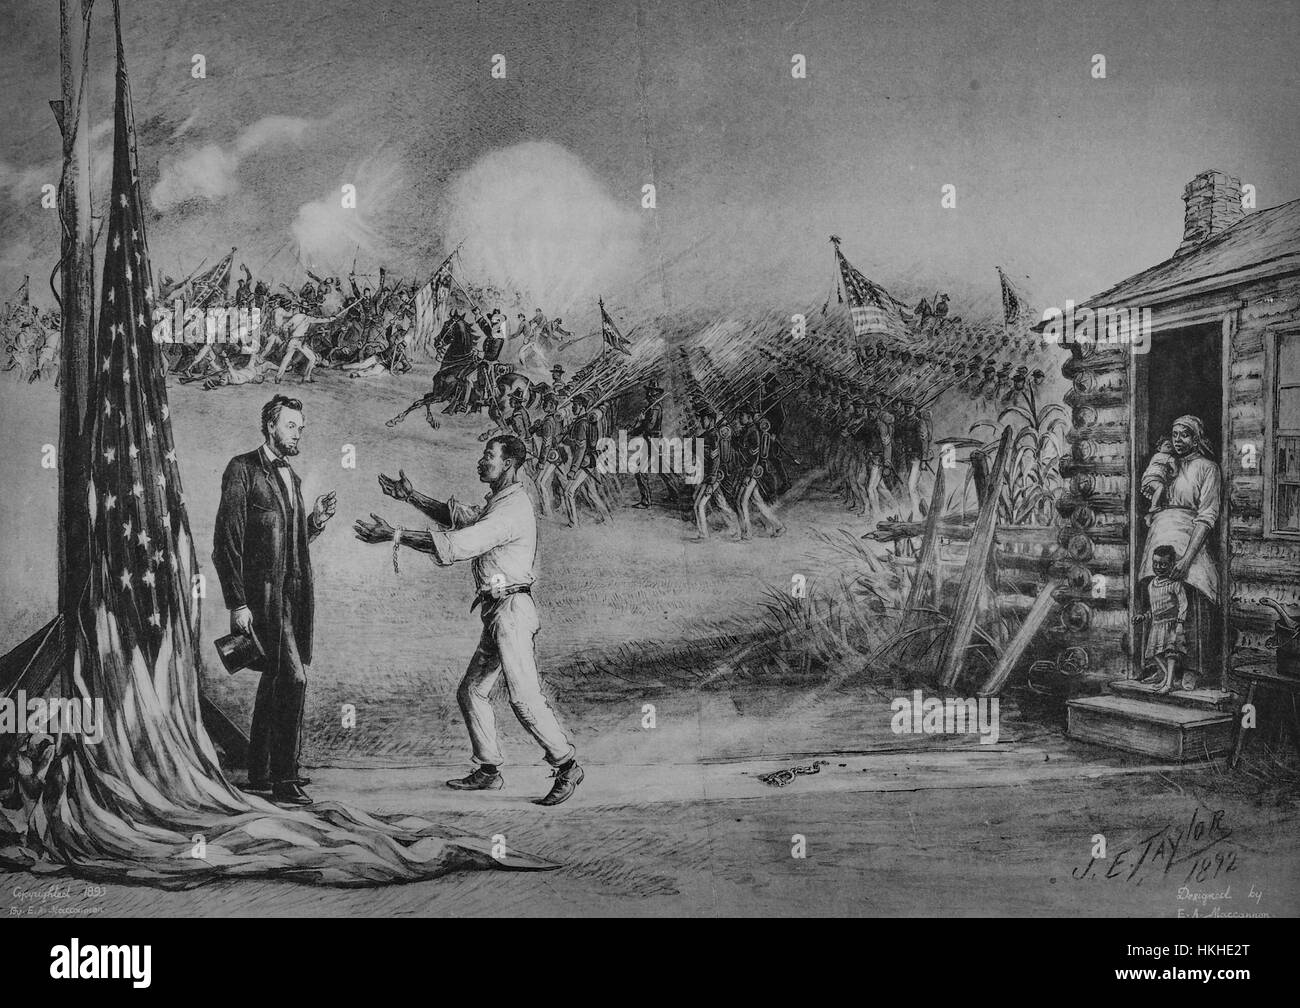 Illustration depicting a a slave with shackles on the ground behind him, his family looking on, appealing to Abraham Lincoln with a Civil War battle scene behind them, titled 'Appealing to be allowed to help fight for the Union', by James Earl Taylor, 1892. From the New York Public Library. Stock Photo